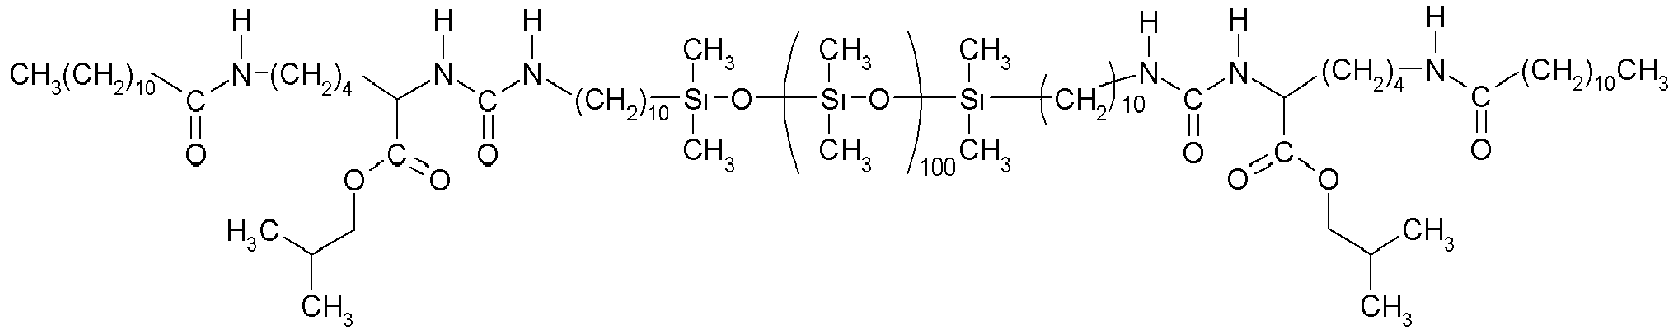 EP2492333A1 - Thickening or gelling agent for oily raw materials